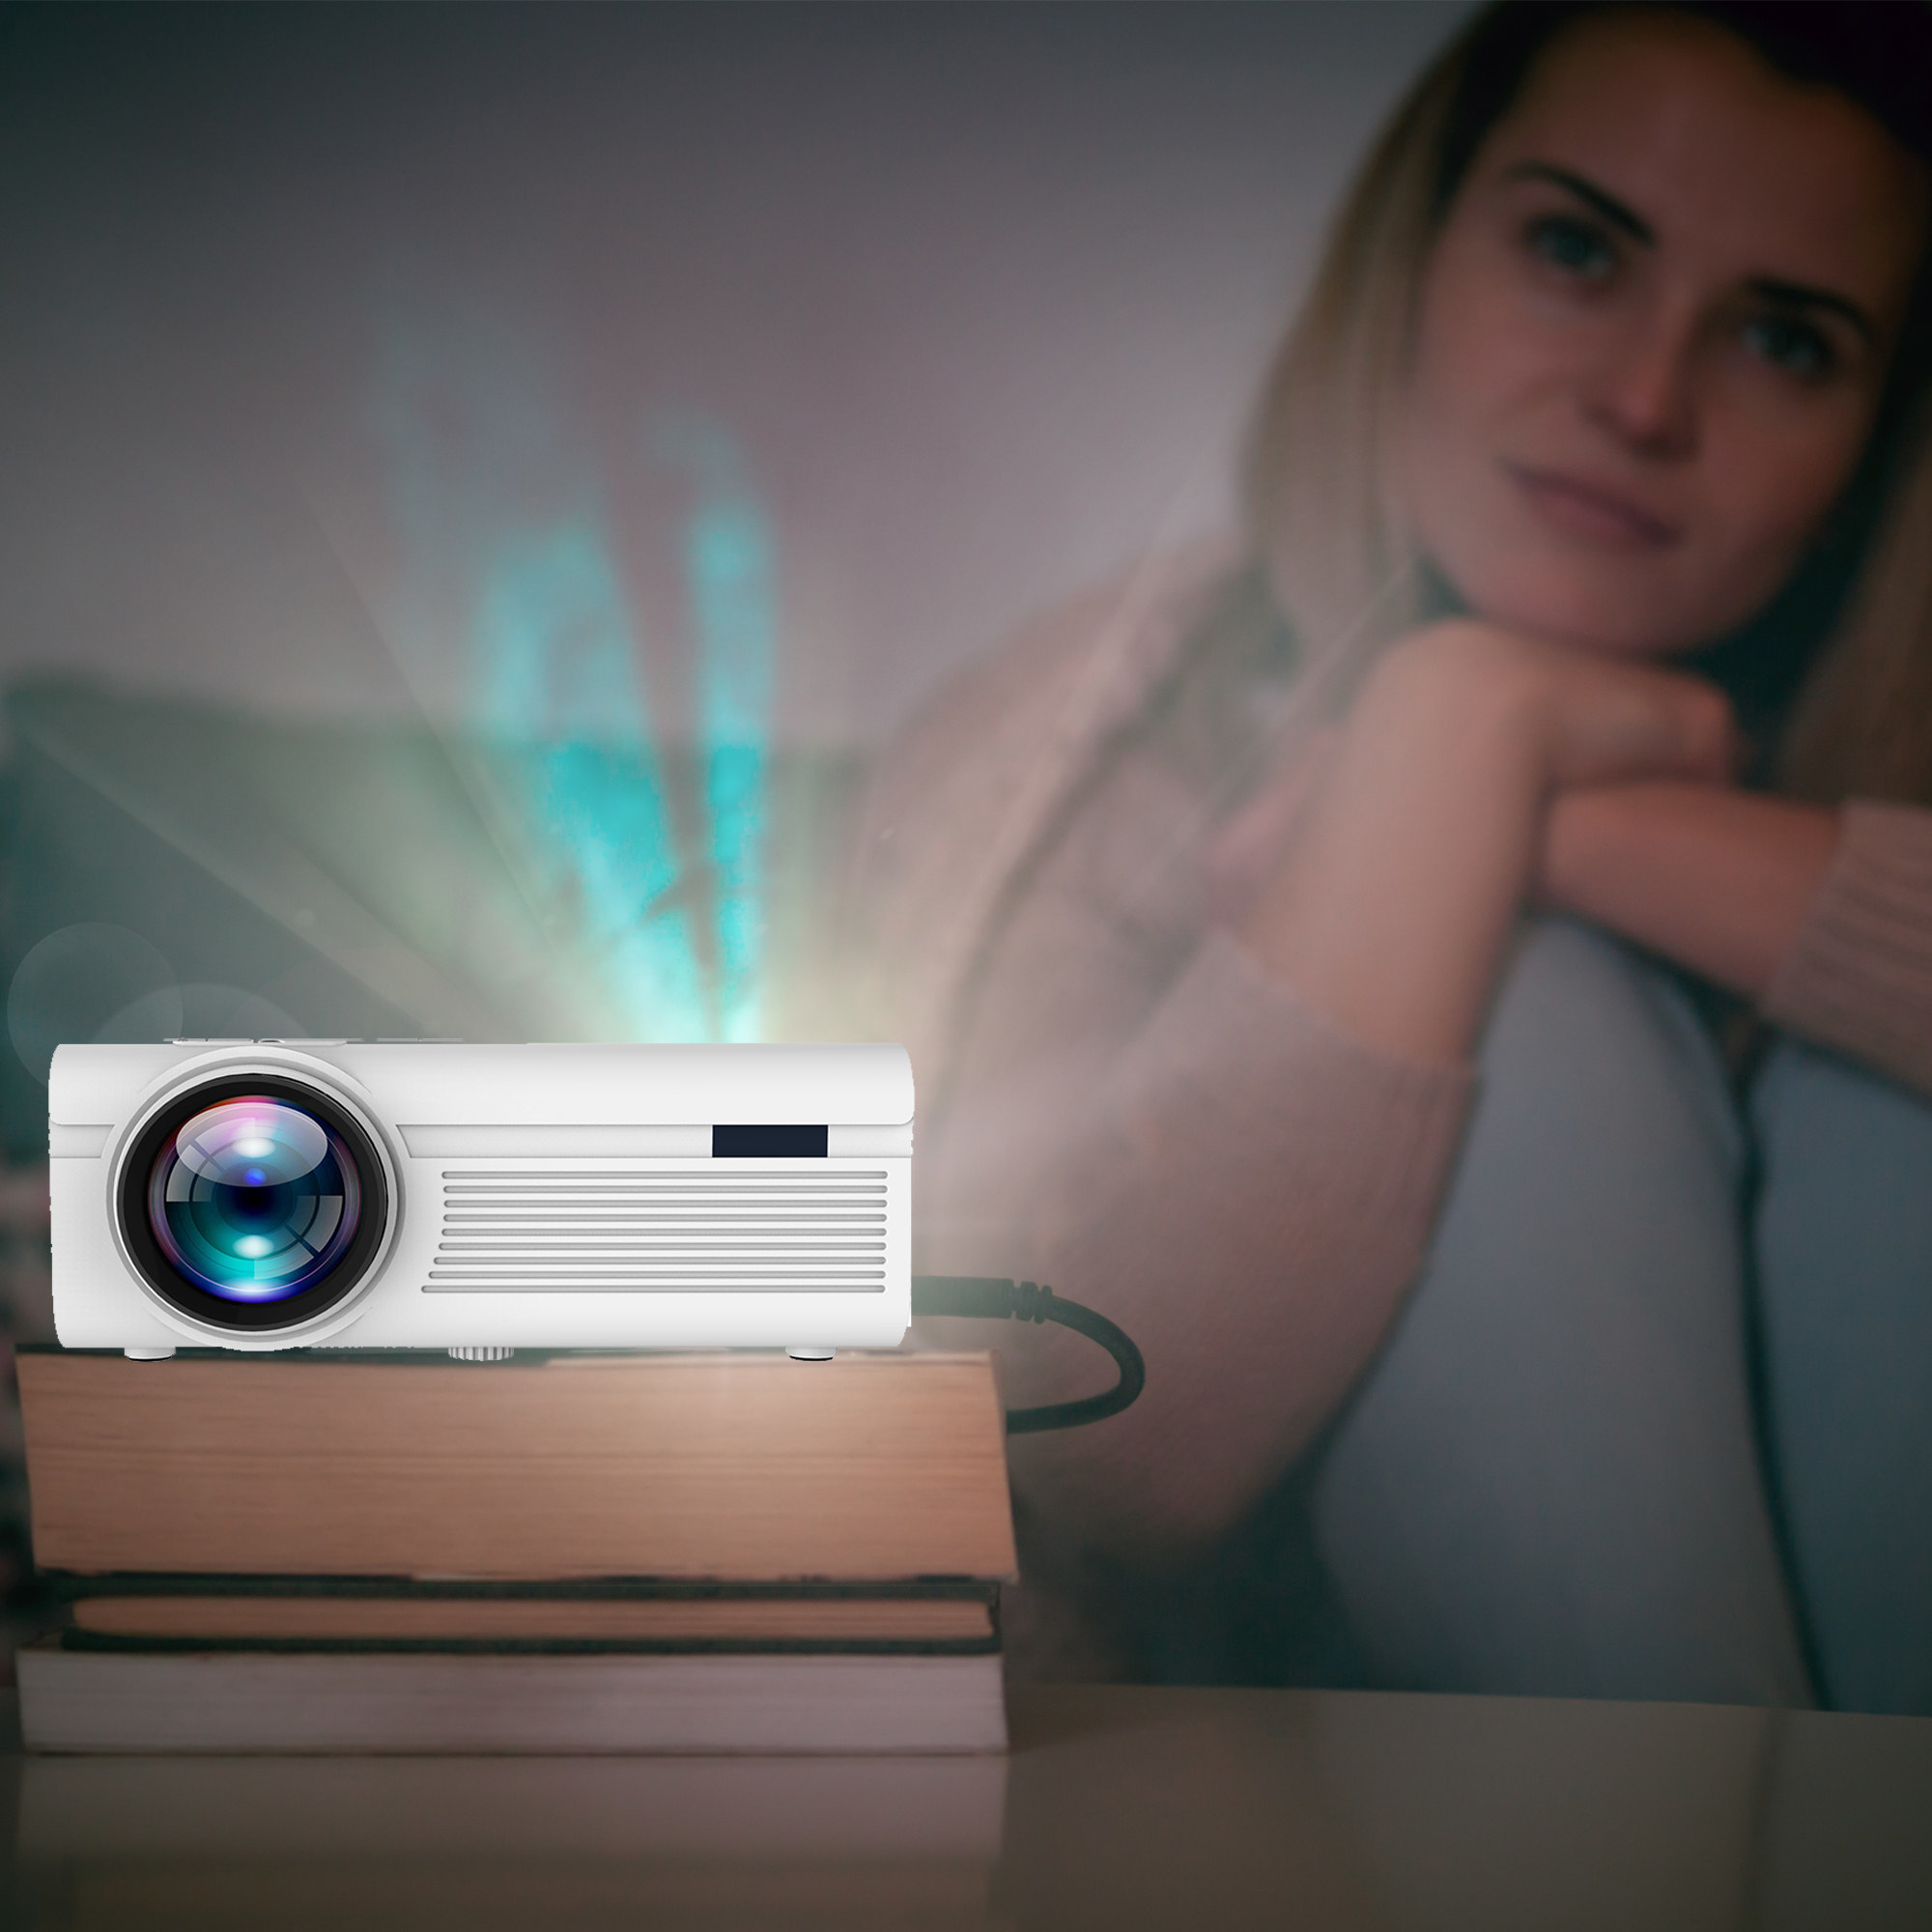 Model uses RCA home theater projector